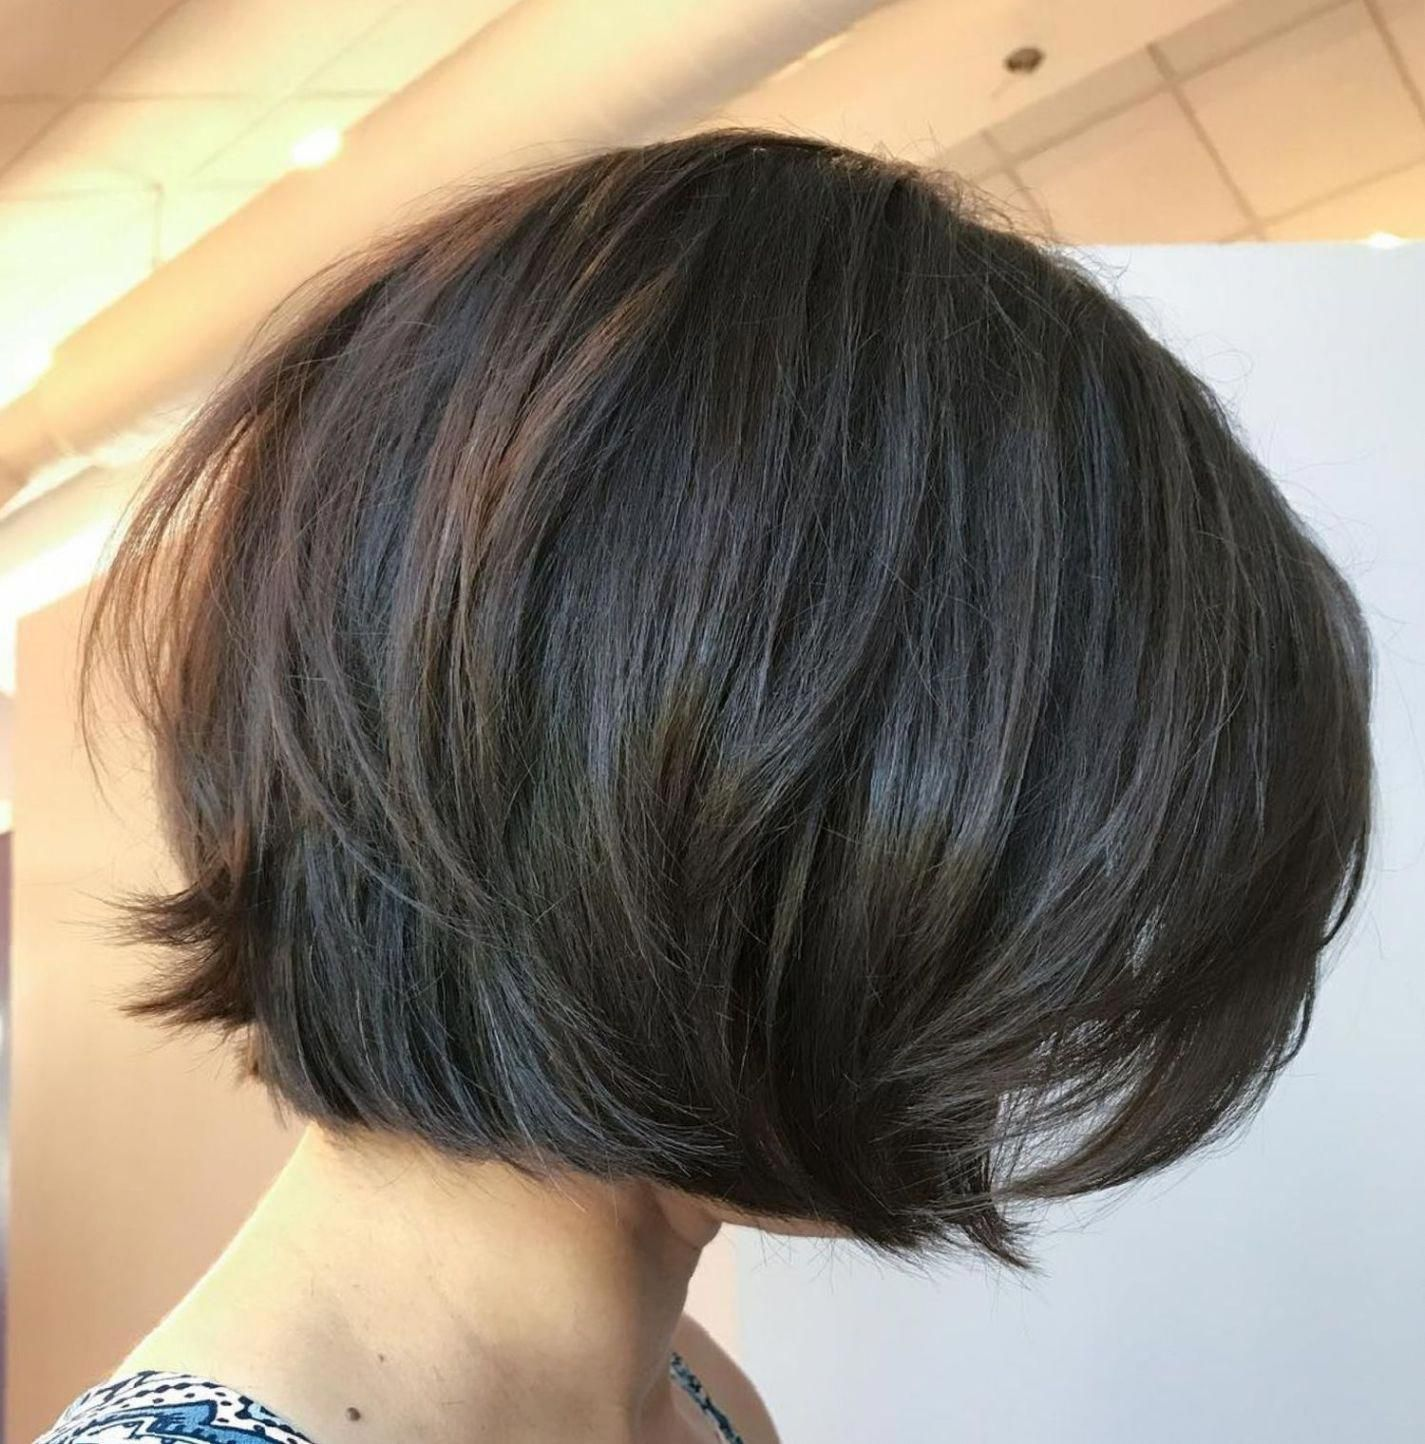 One Length Layered Brown Bob Shorthairstyles Haarschnitt Ideen Haarschnitt Bob Haarschnitt